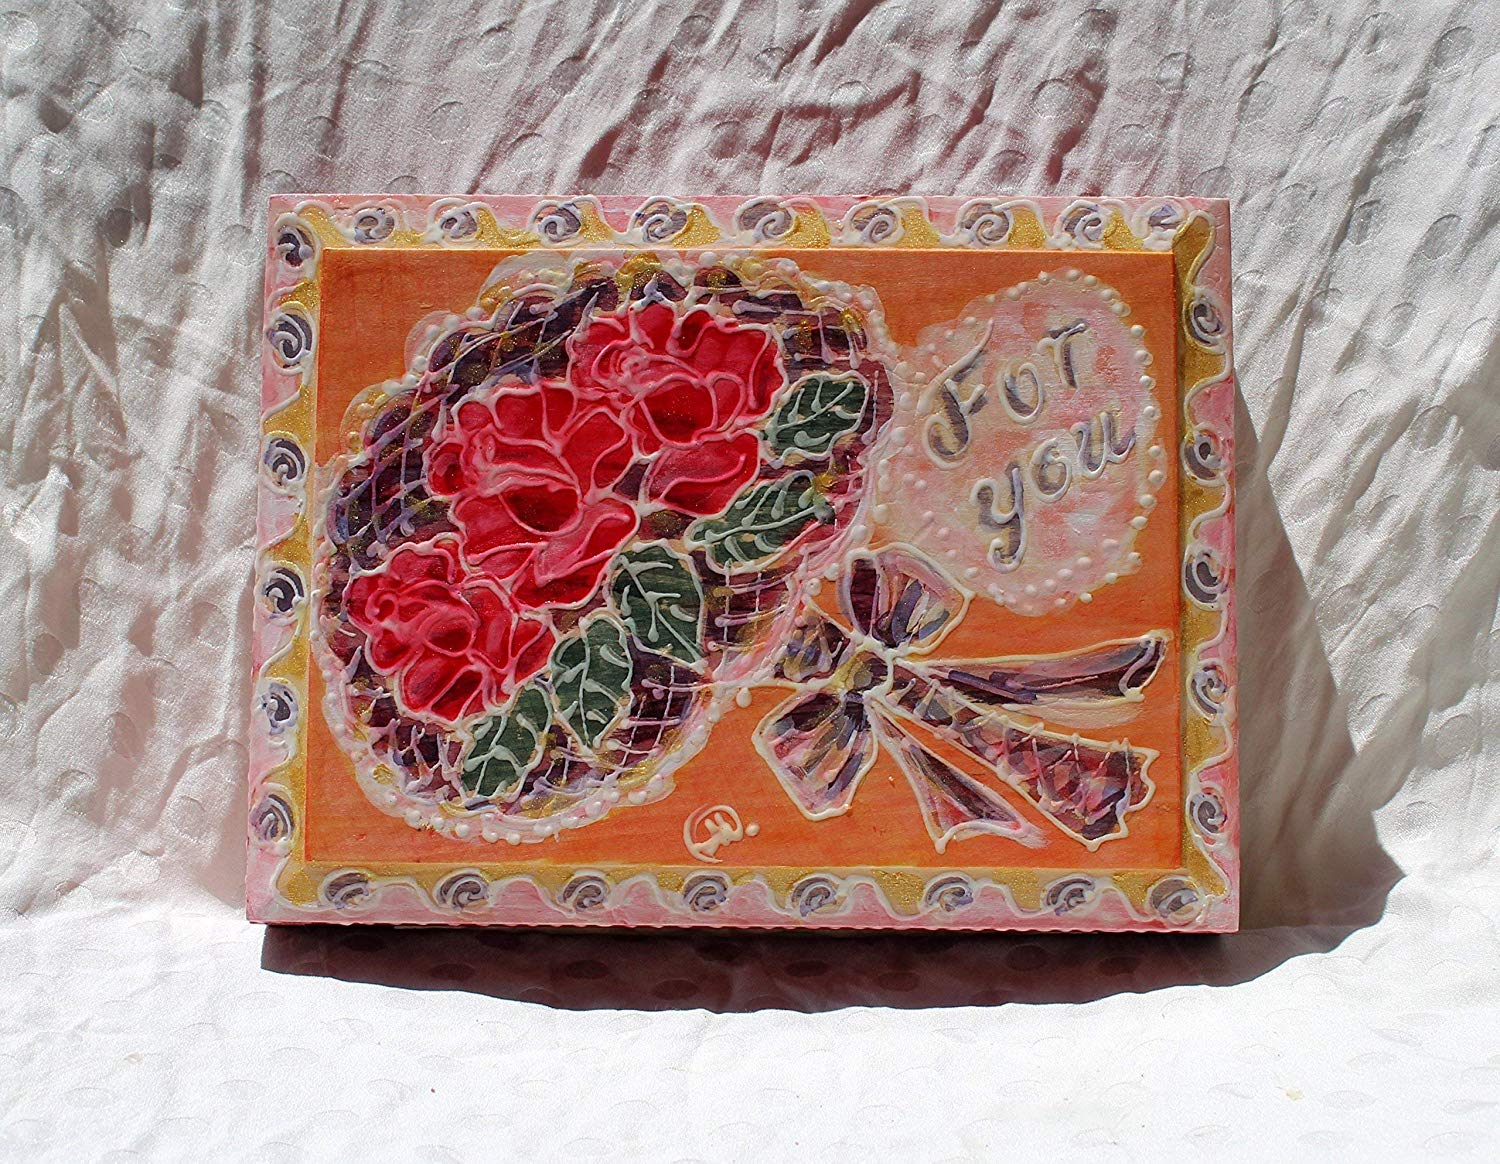 Sale!!!10% Off,Hand Painted Wooden Jewelry Box with Wedding bouquet, Roses Flowers and text FOR YOU, Home Decoration, Treasure Box, Wedding Box, Gift for her.